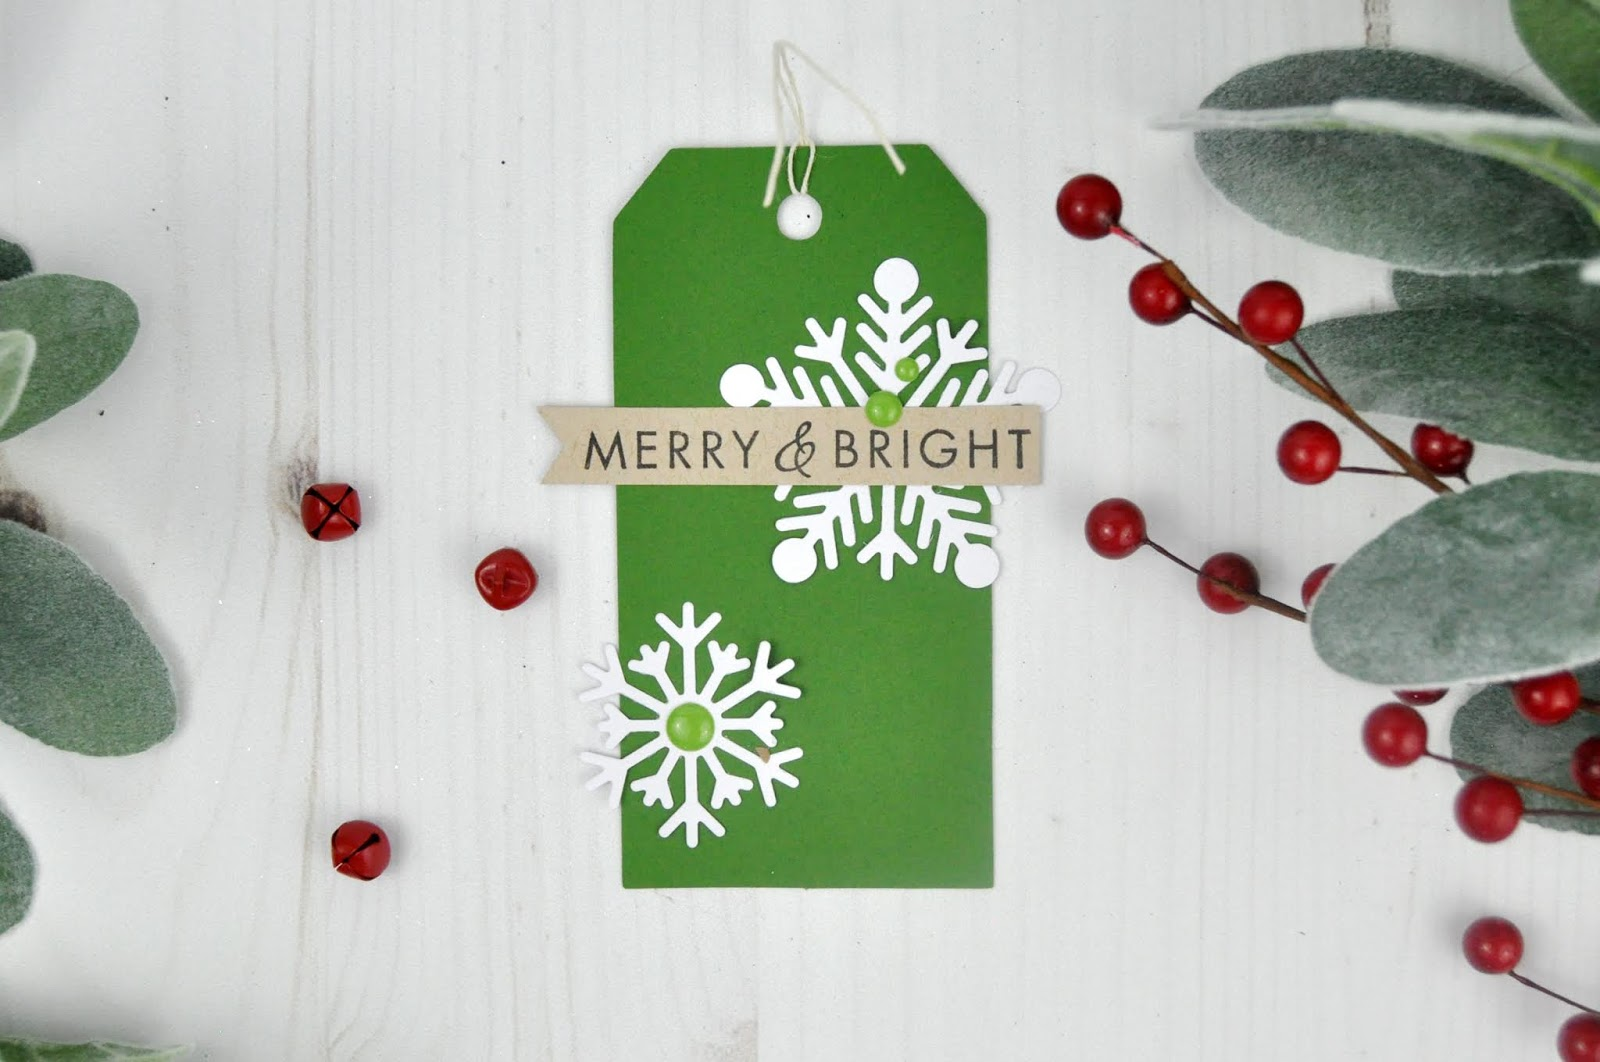 Christmas card and tags stamped and die cut with holiday phrases and Christmas die cut shapes. Created by Jen Gallacher for www.jengallacher.com. #christmascard #christmastag #diecutting #holidaytag #jengallacher